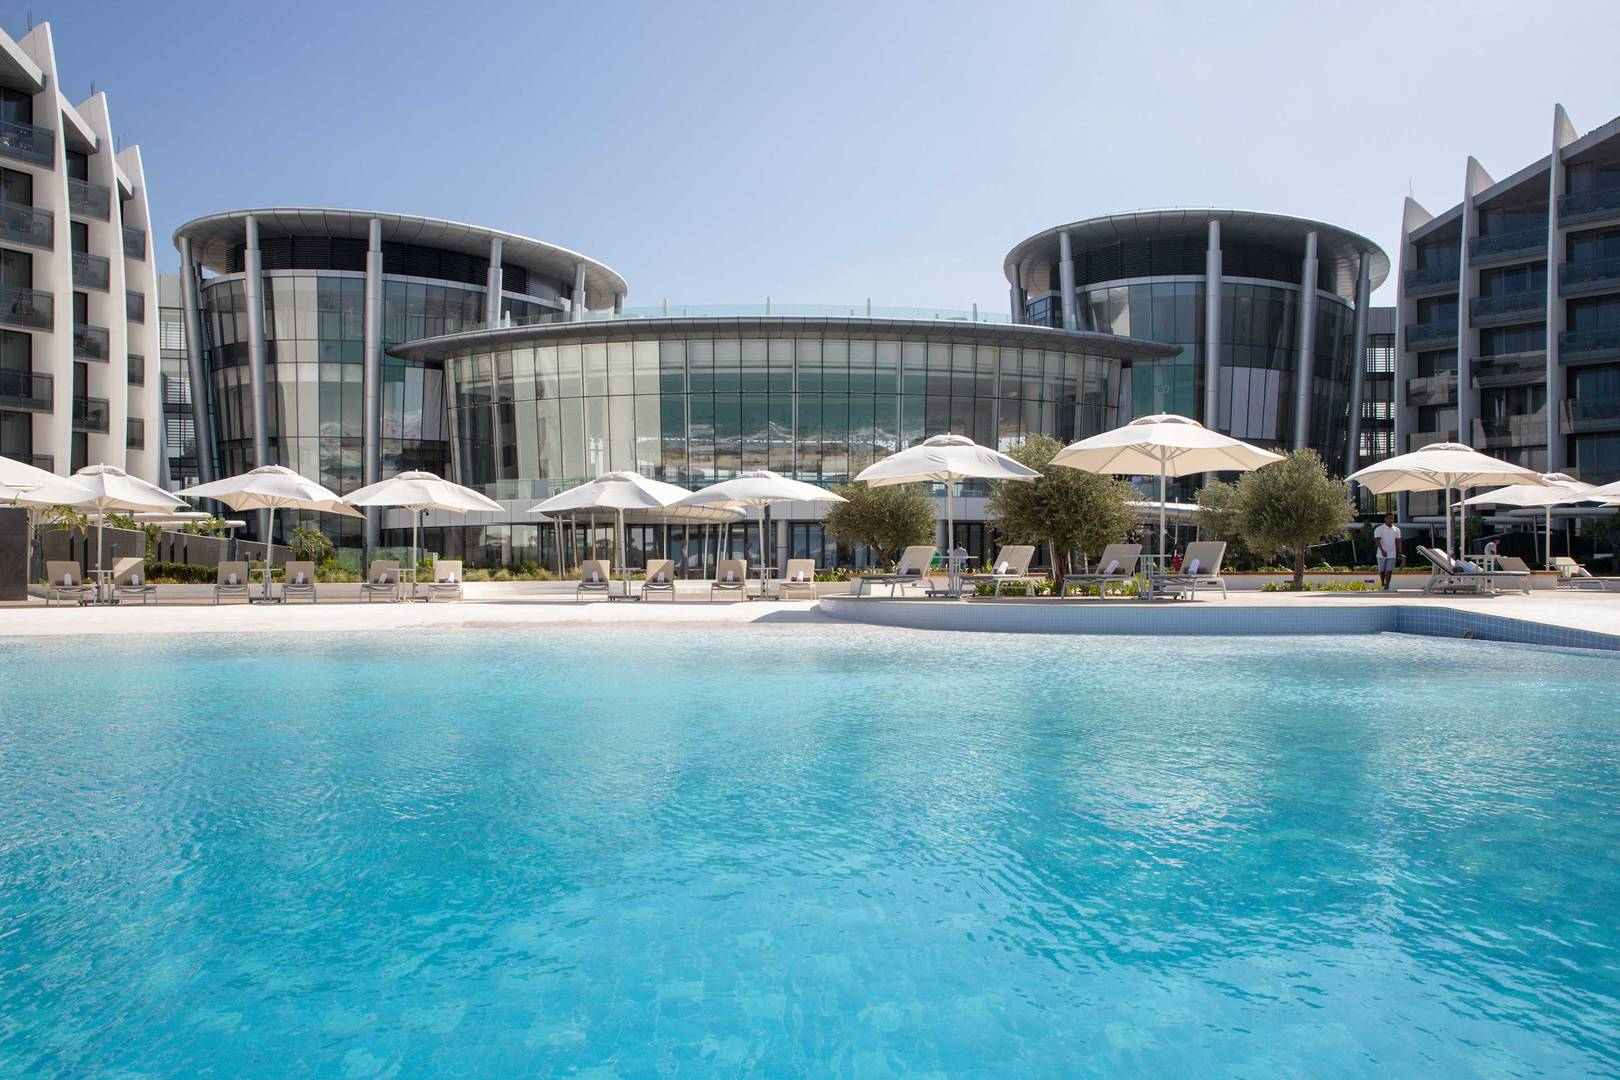 Front view of the Jumeirah Saadiyat Island Resort